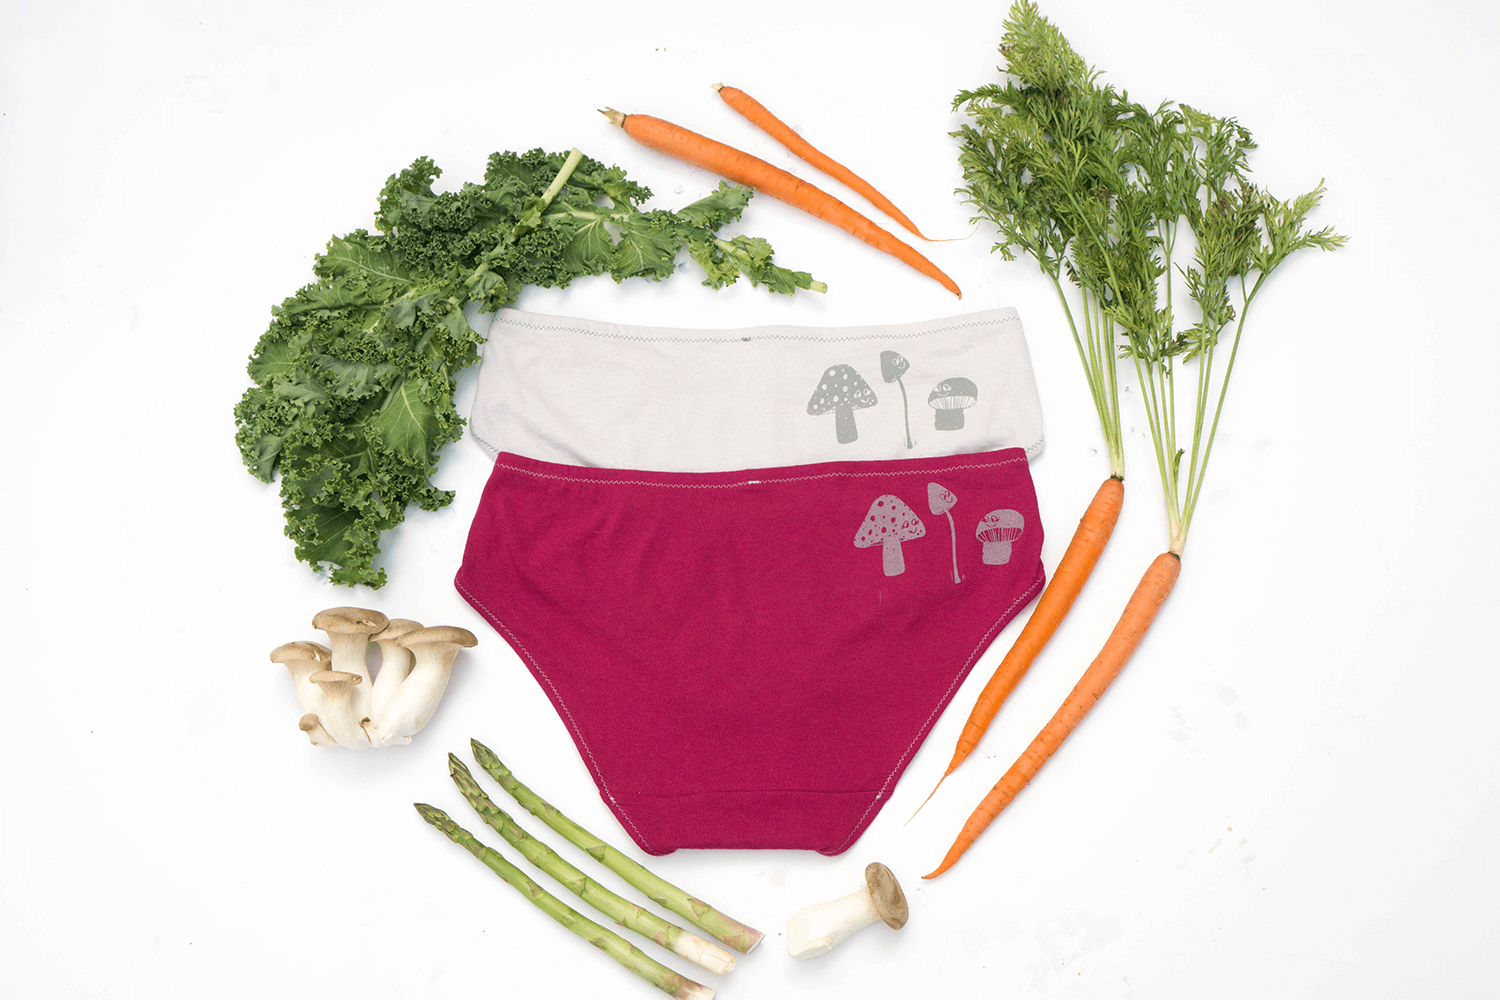 Marvelous Mushrooms Handmade Underwear | La Vie en Orange